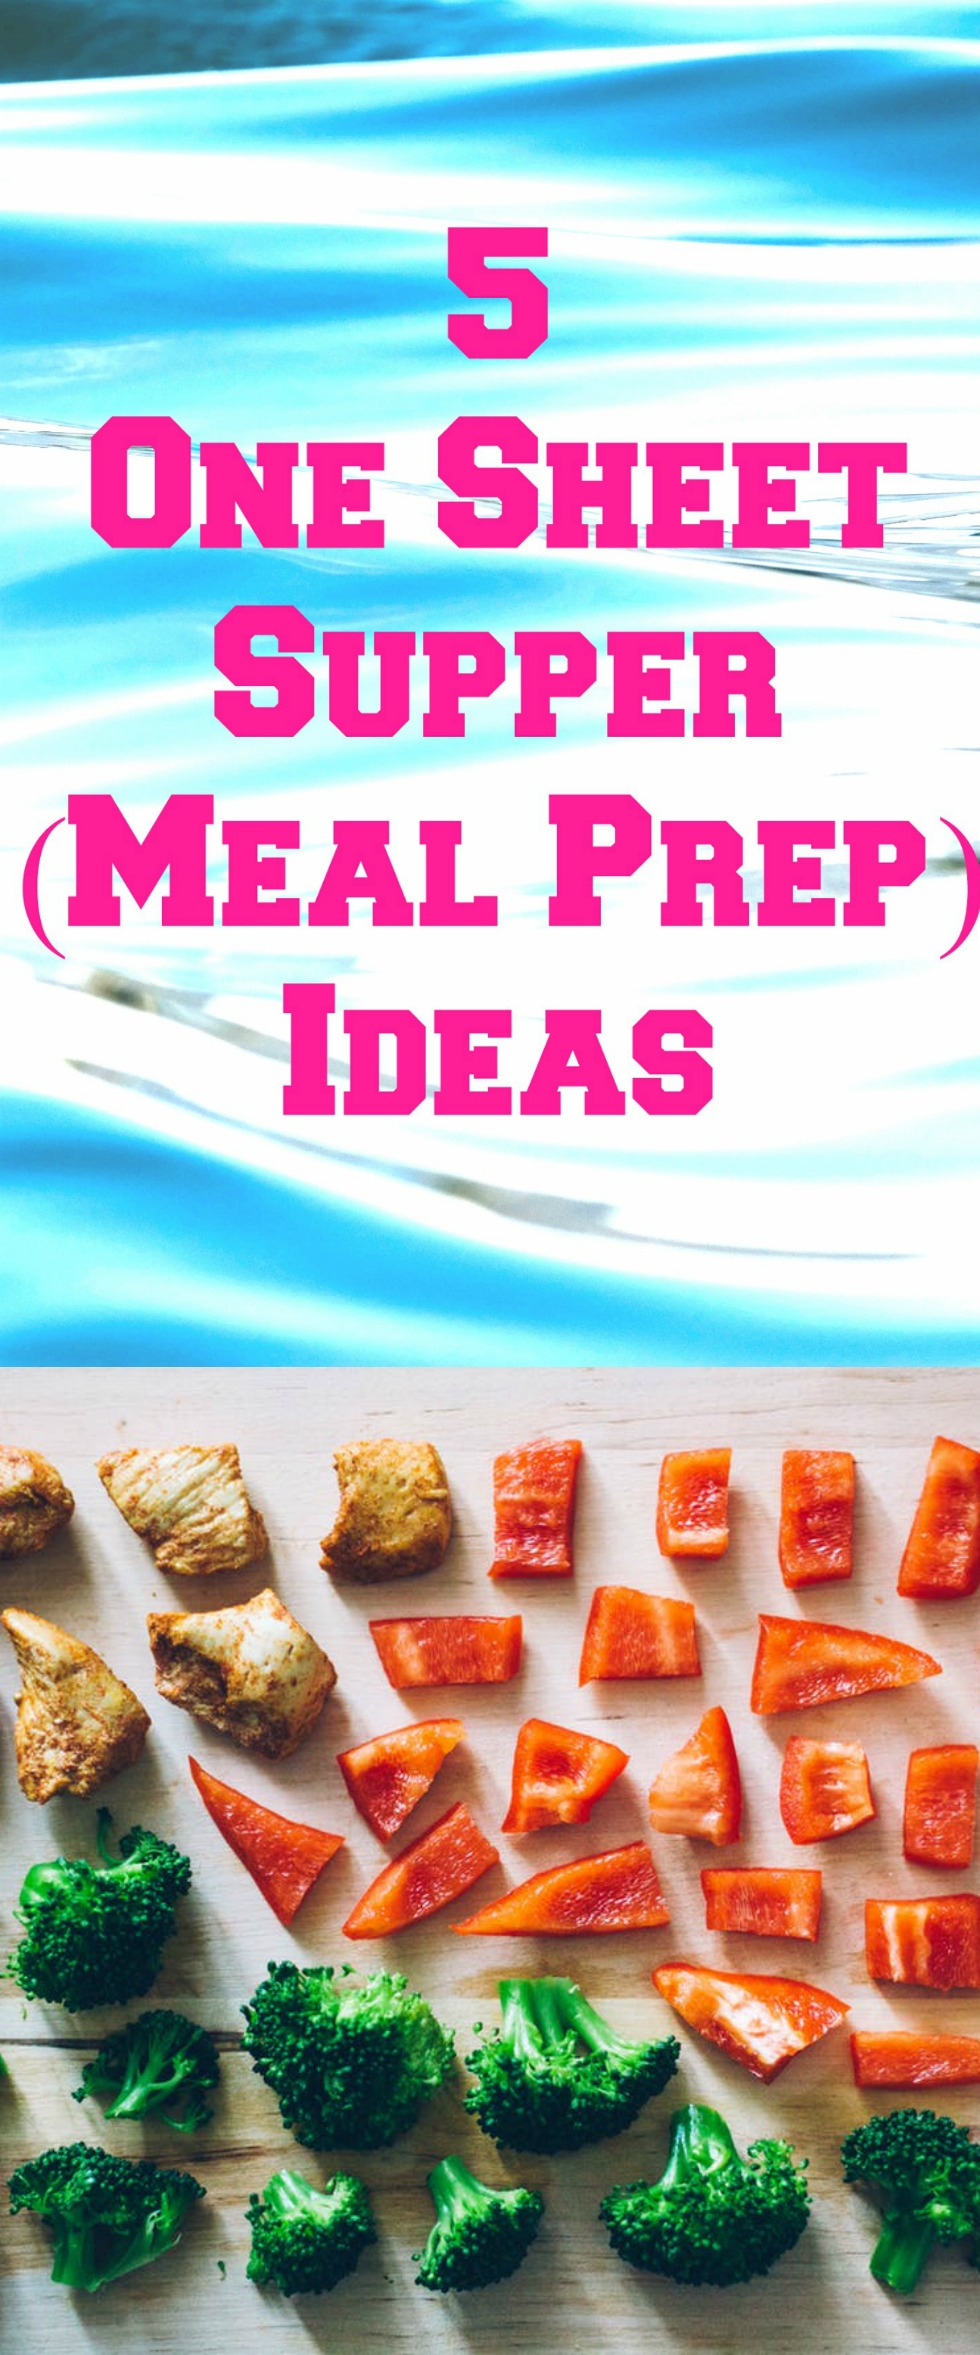 You're going to LOVE Meal Prep made easy with 5 sheet pan suppers. Easily place all your healthy ingredients on one sheet pan and bake. Once done place in individual containers which are prepared for lunch.